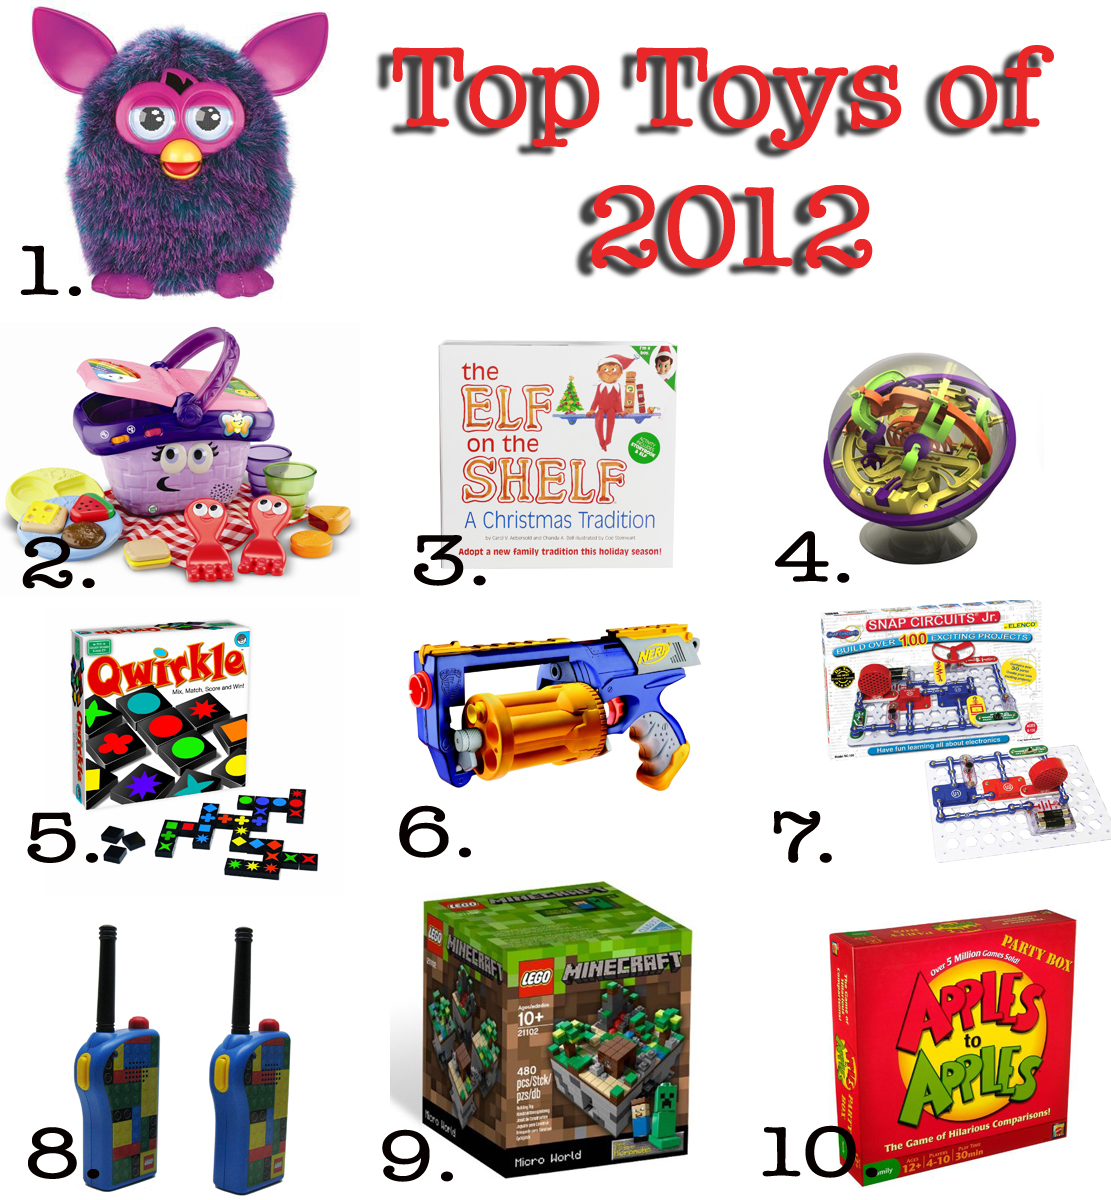 Top Toys 1 2012